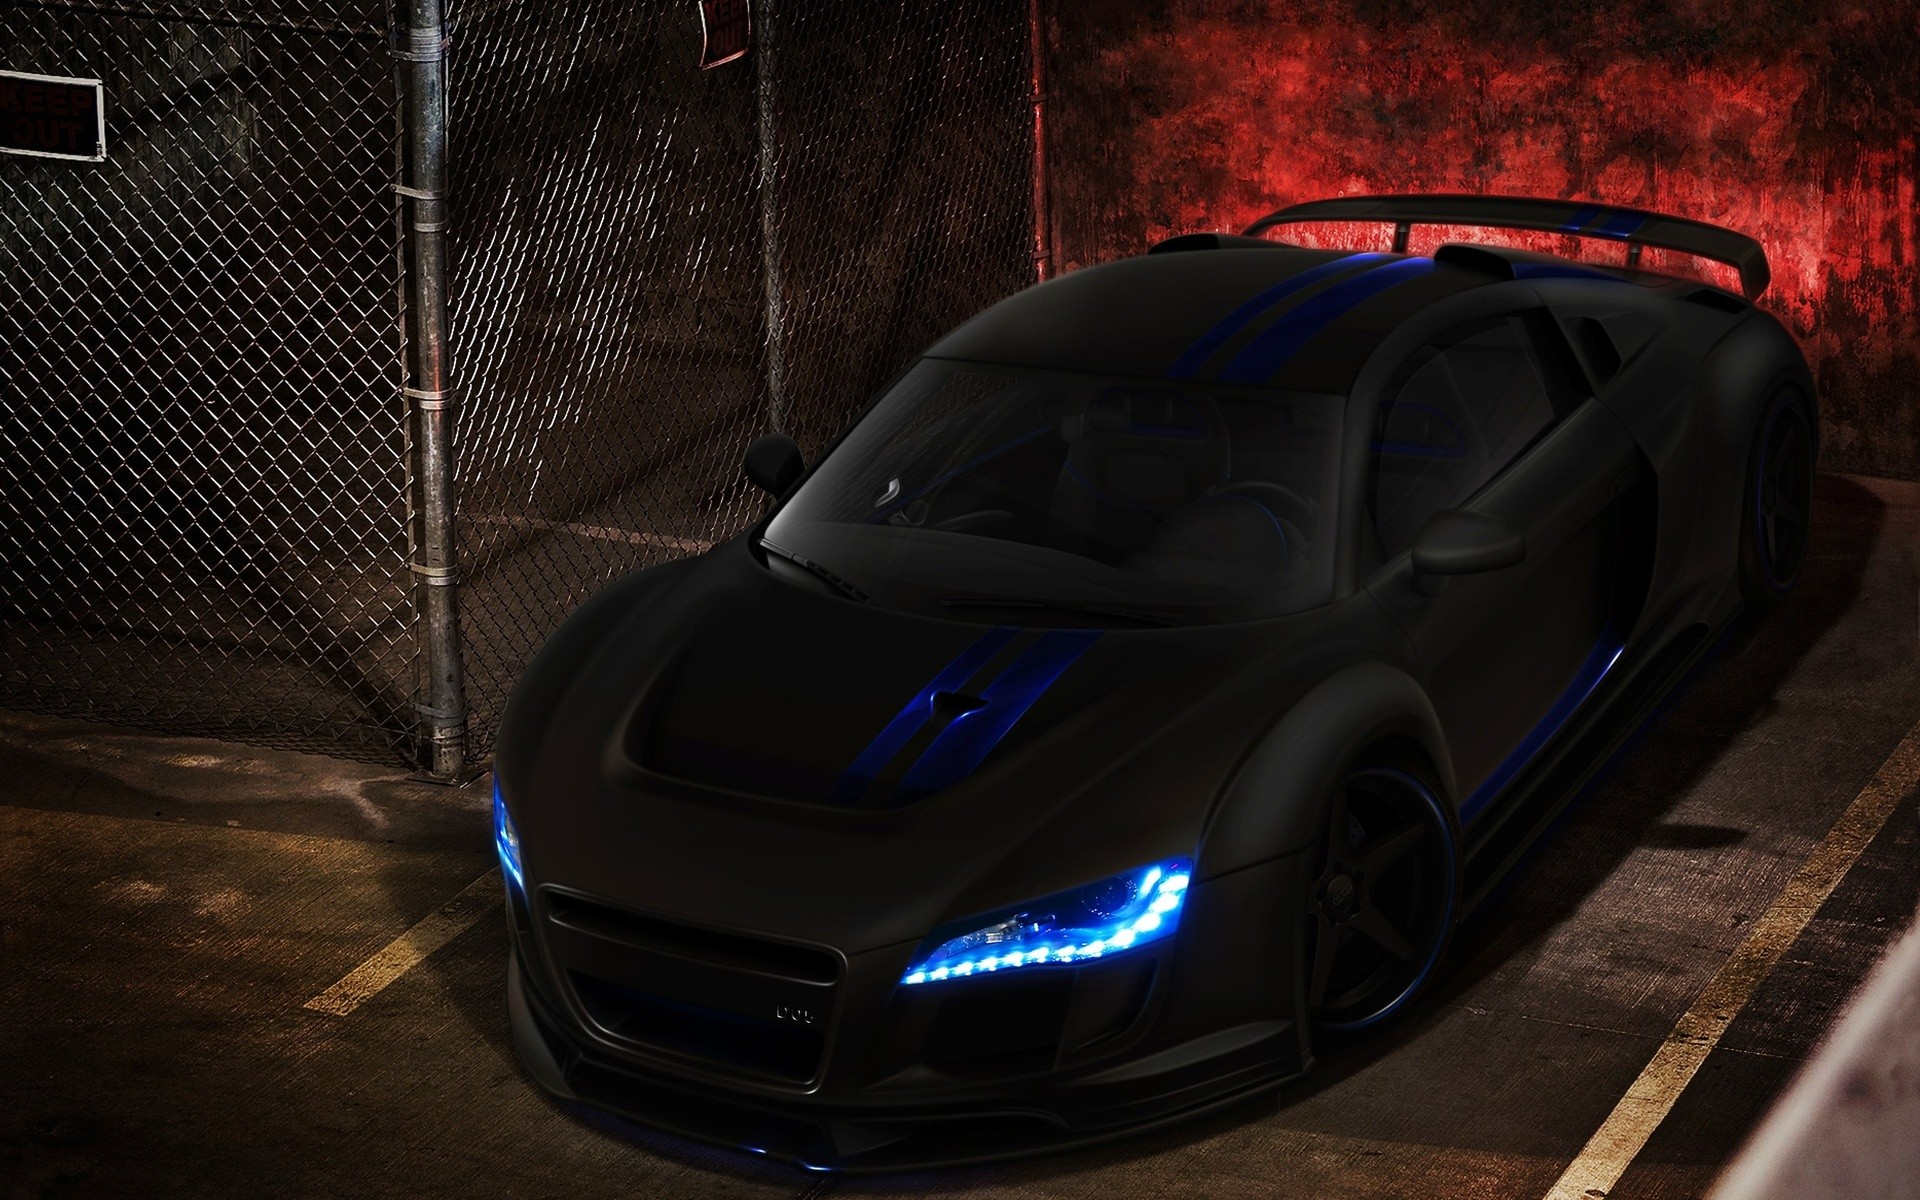 artwork vehicles Audi cars HD Wallpaper